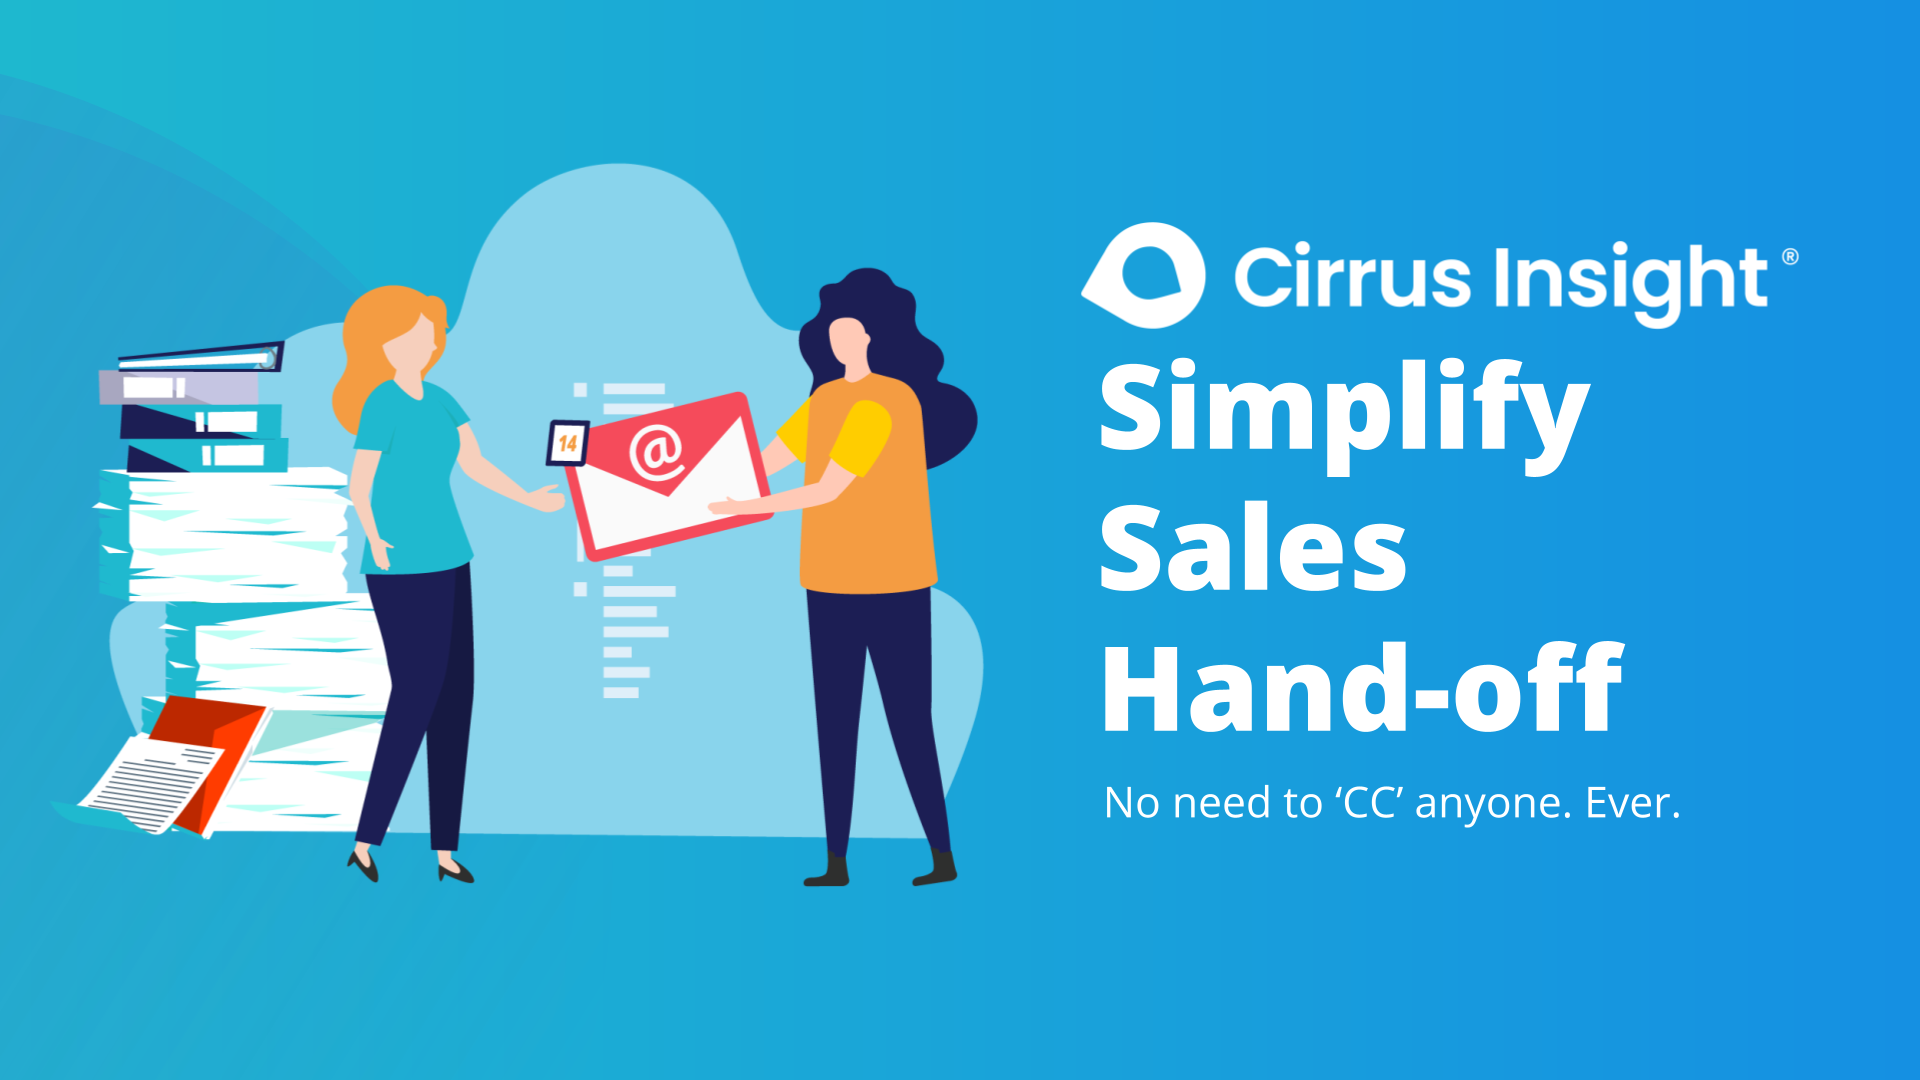 130_Simplify Sales Hand-off_ Supercharge Sales Activity-Cirrus Insight Microsite